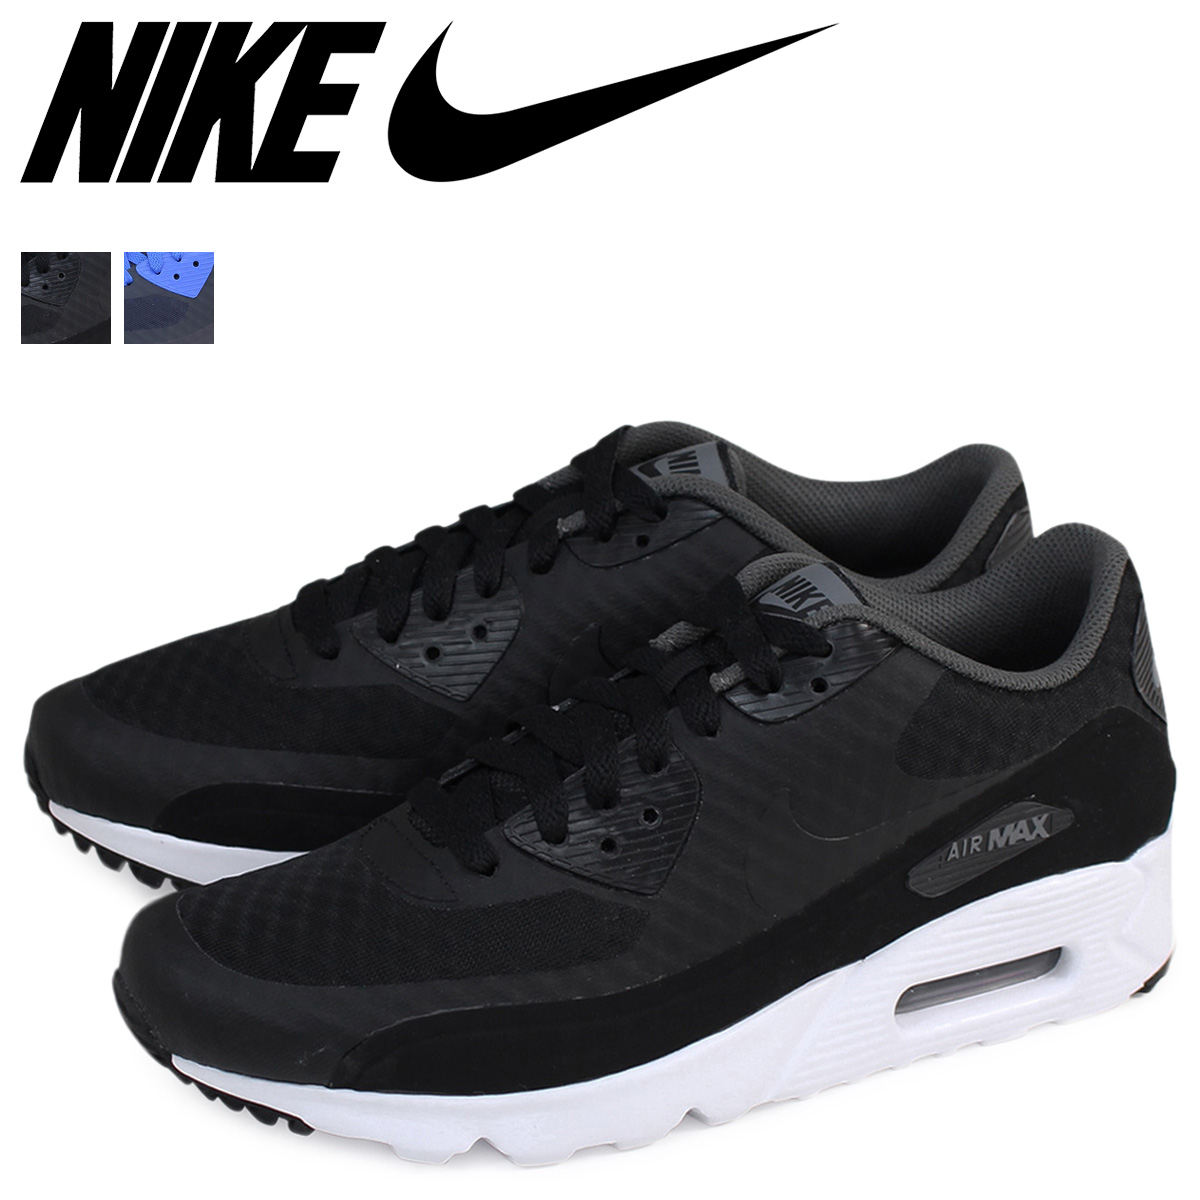 low priced 96132 9e8d7 Nike NIKE Air Max 90 essential sneakers AIR MAX 90 ULTRA ESSENTIAL  819,474-013 819,474-405 men's black